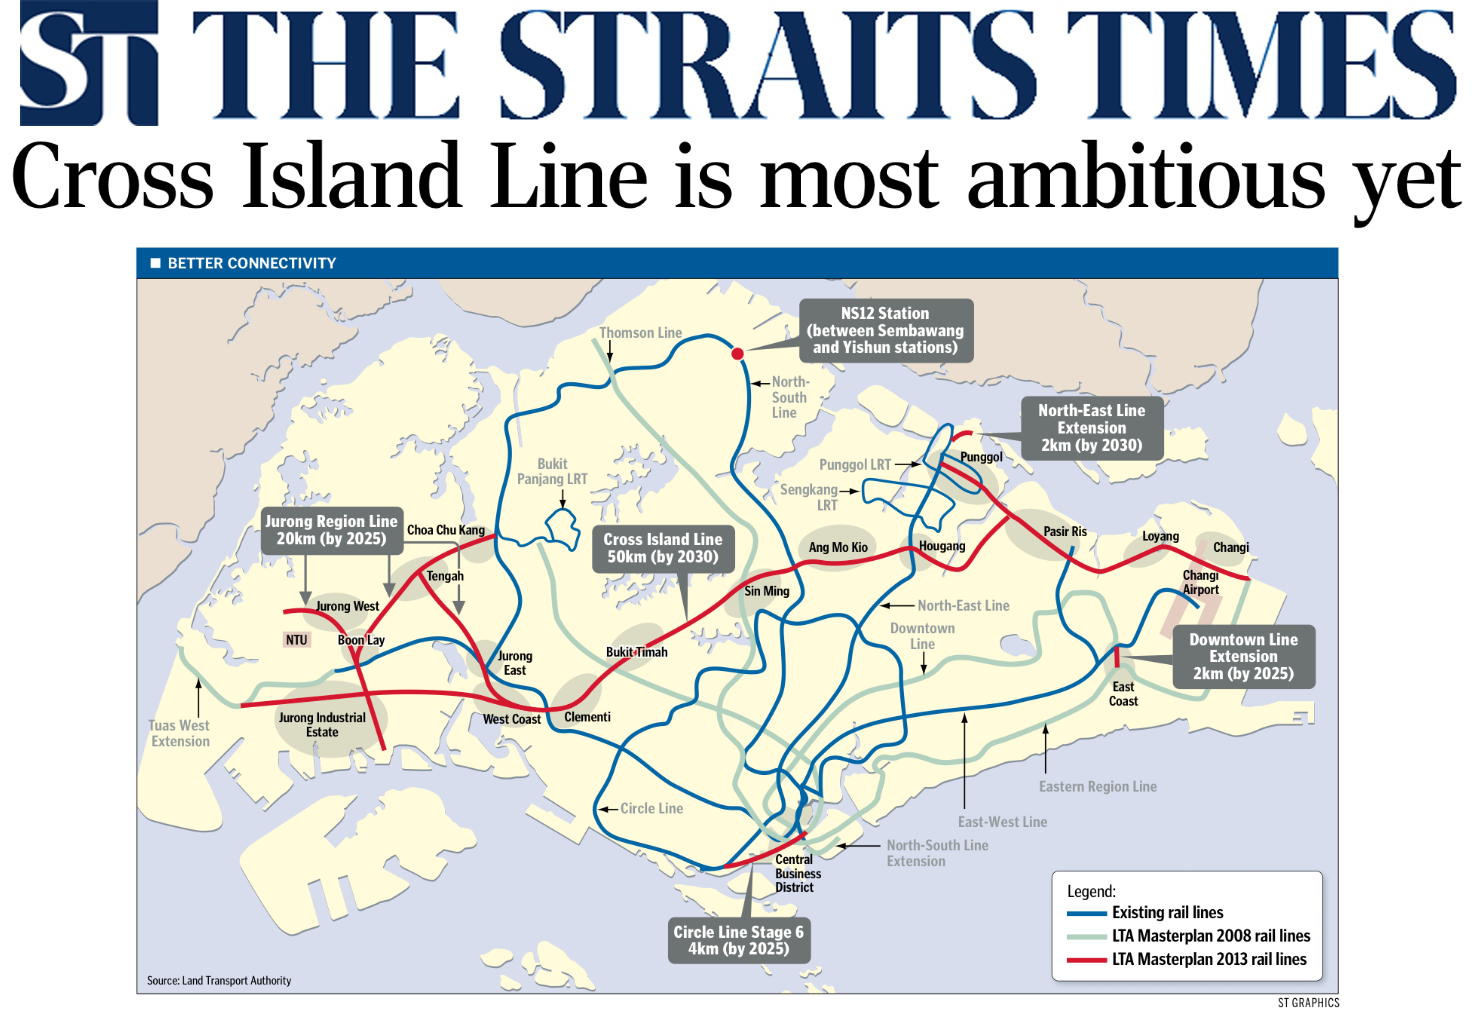 The Straits Times 2013 - Cross Island Line is most ambitious yet